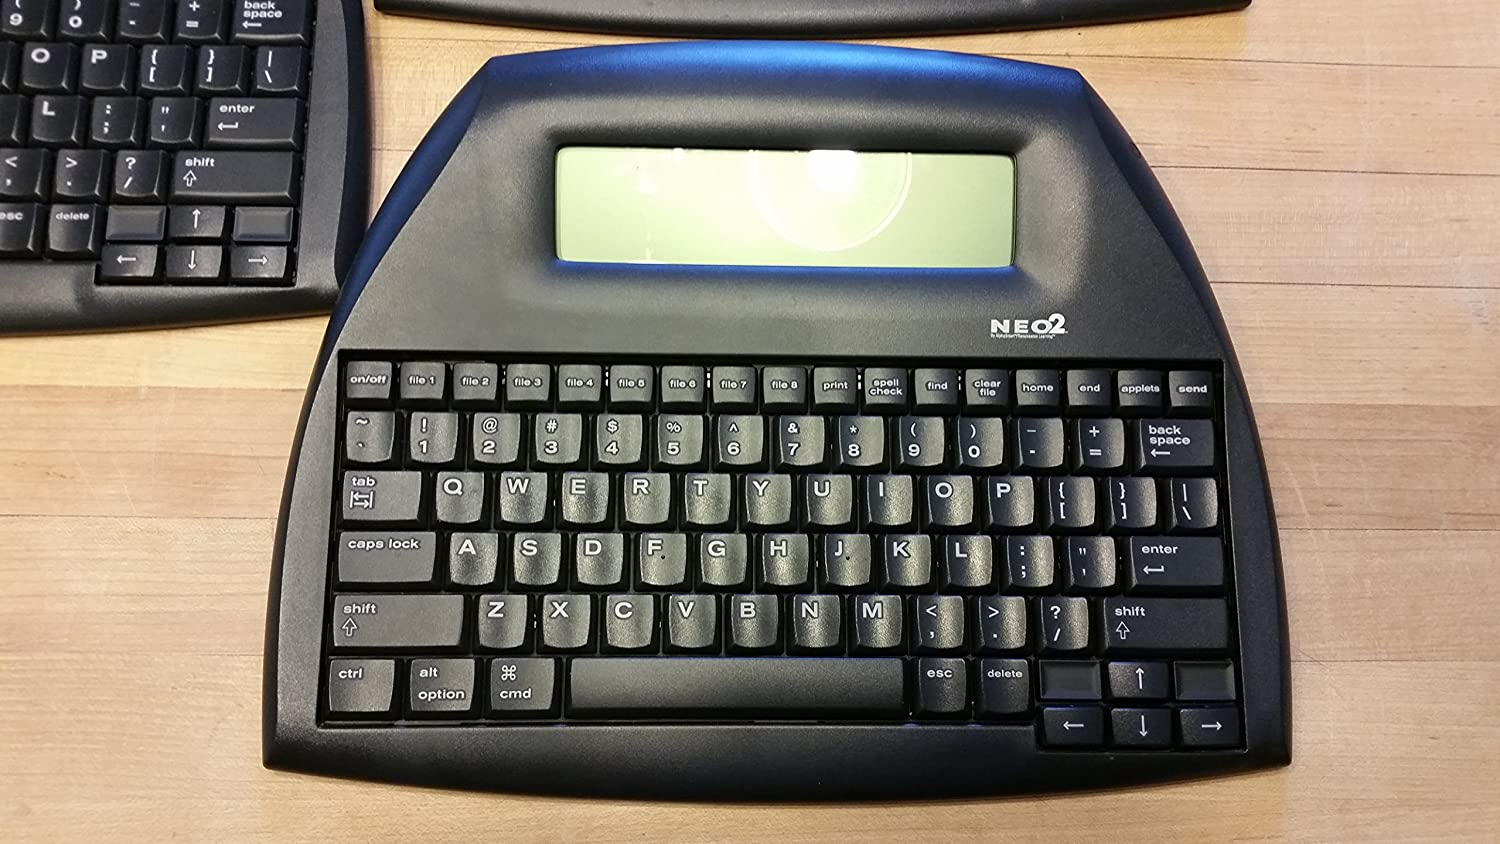 Neo2 Alphasmart Word Processor with Full Size Keyboard, Calculator